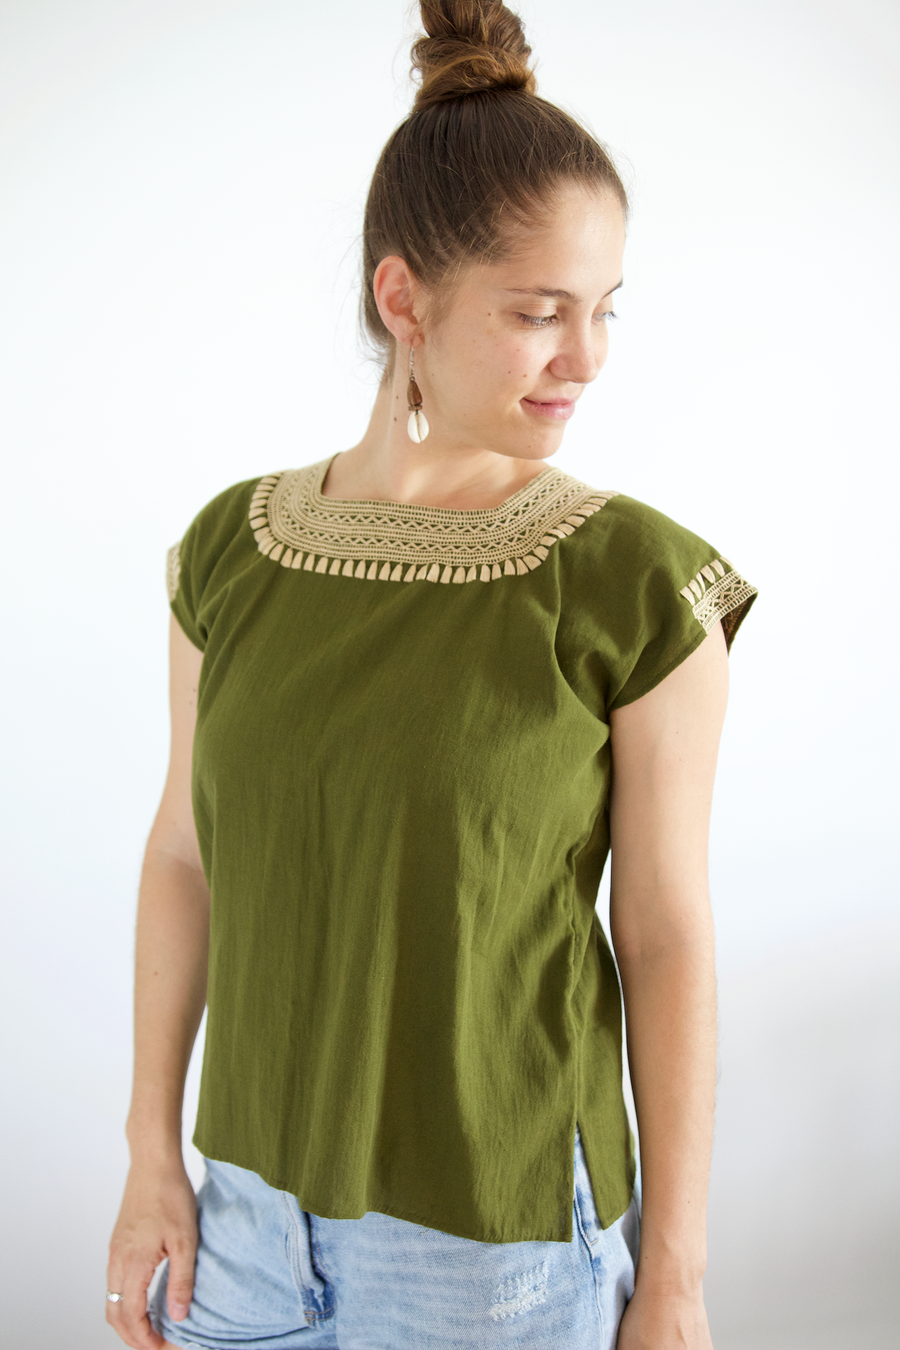 Dorada Blouse - Olive Green